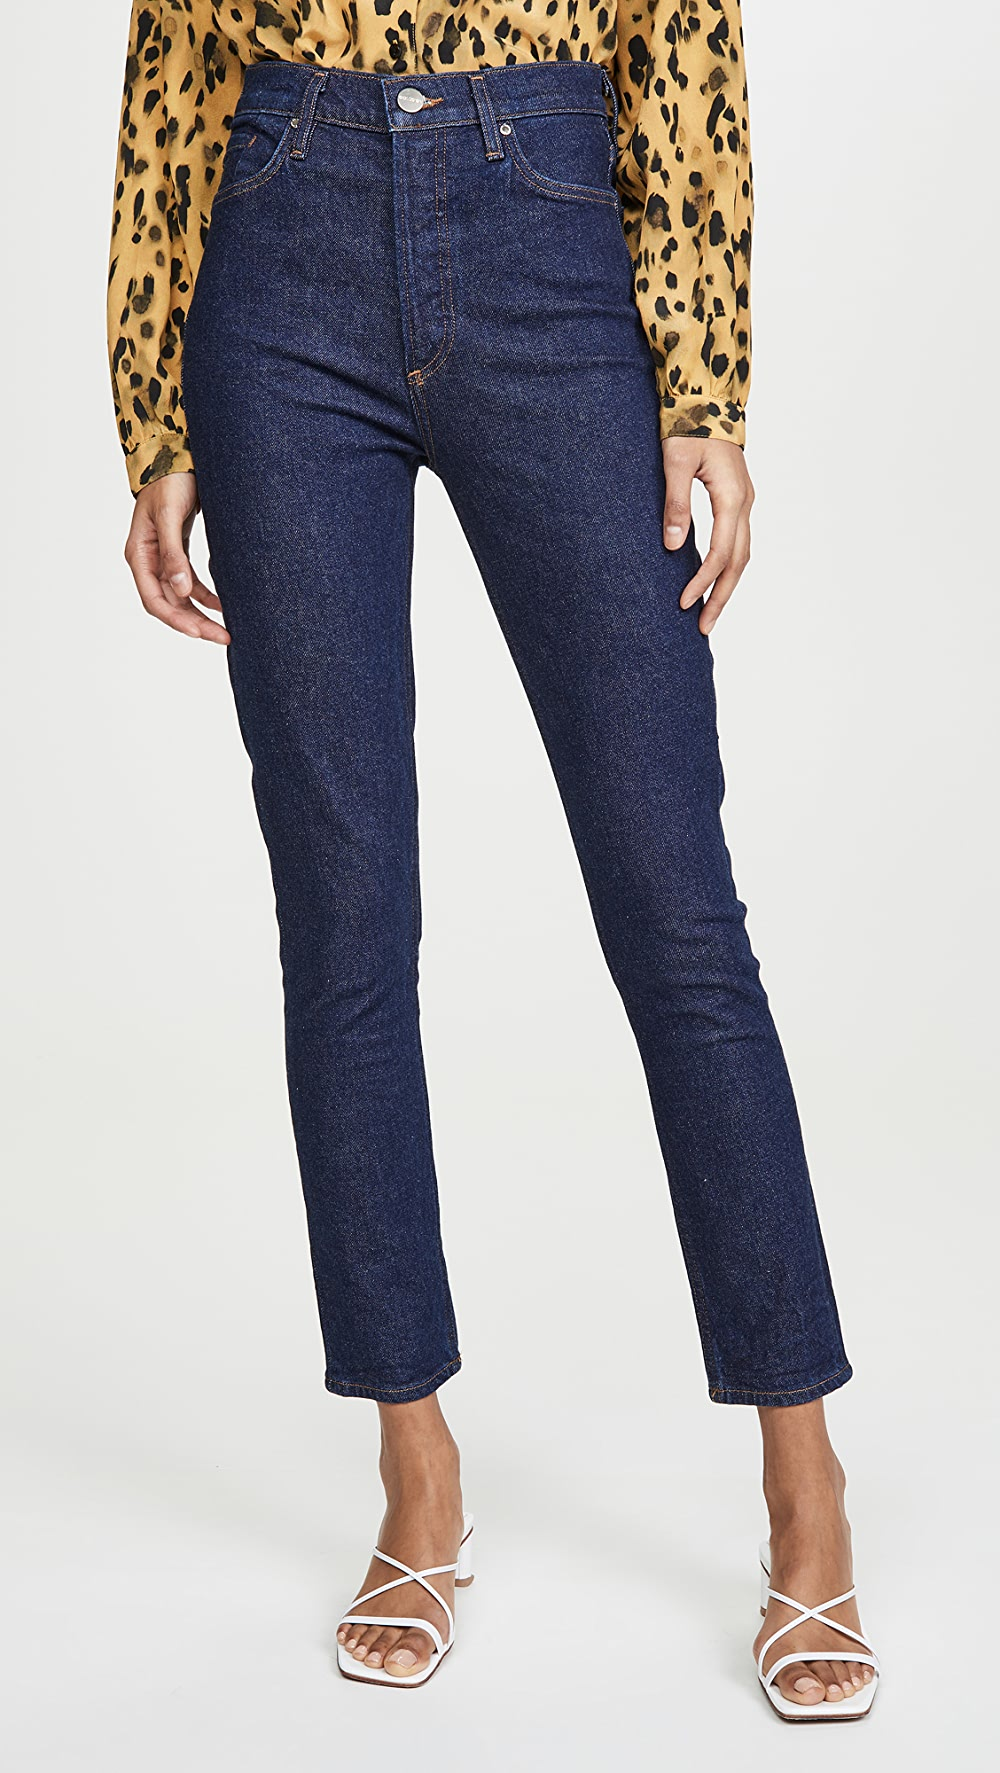 Open-Minded Goldsign - The High Rise Slim Jeans A Great Variety Of Models